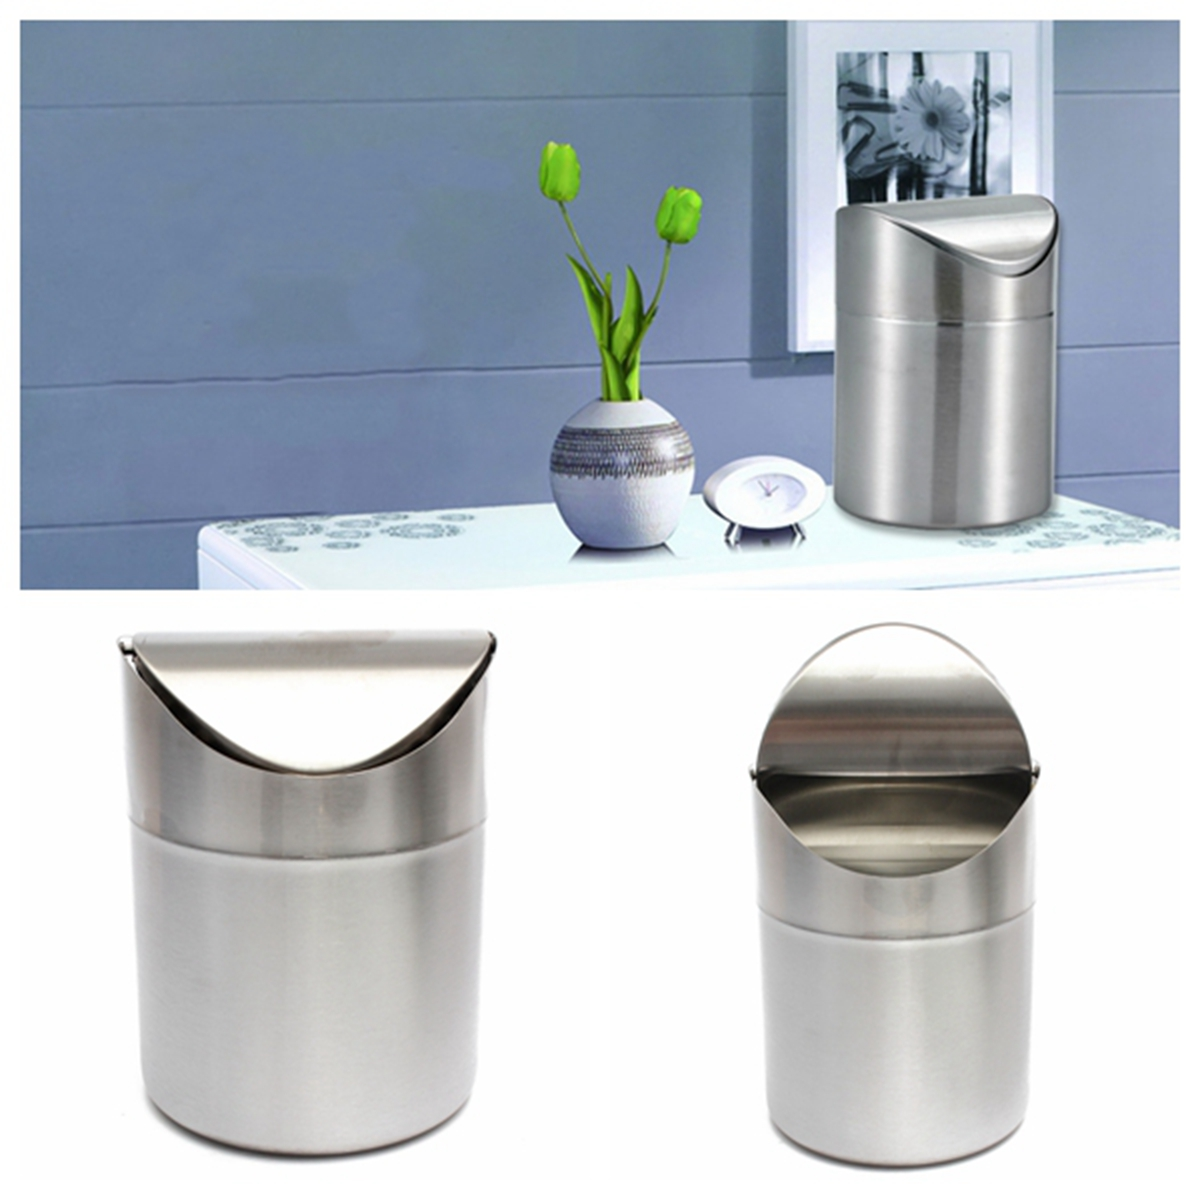 1 5l Home Kitchen Table Tidy Stainless Steel Dustbin Trash Can Waste Rubbish Bin Ebay